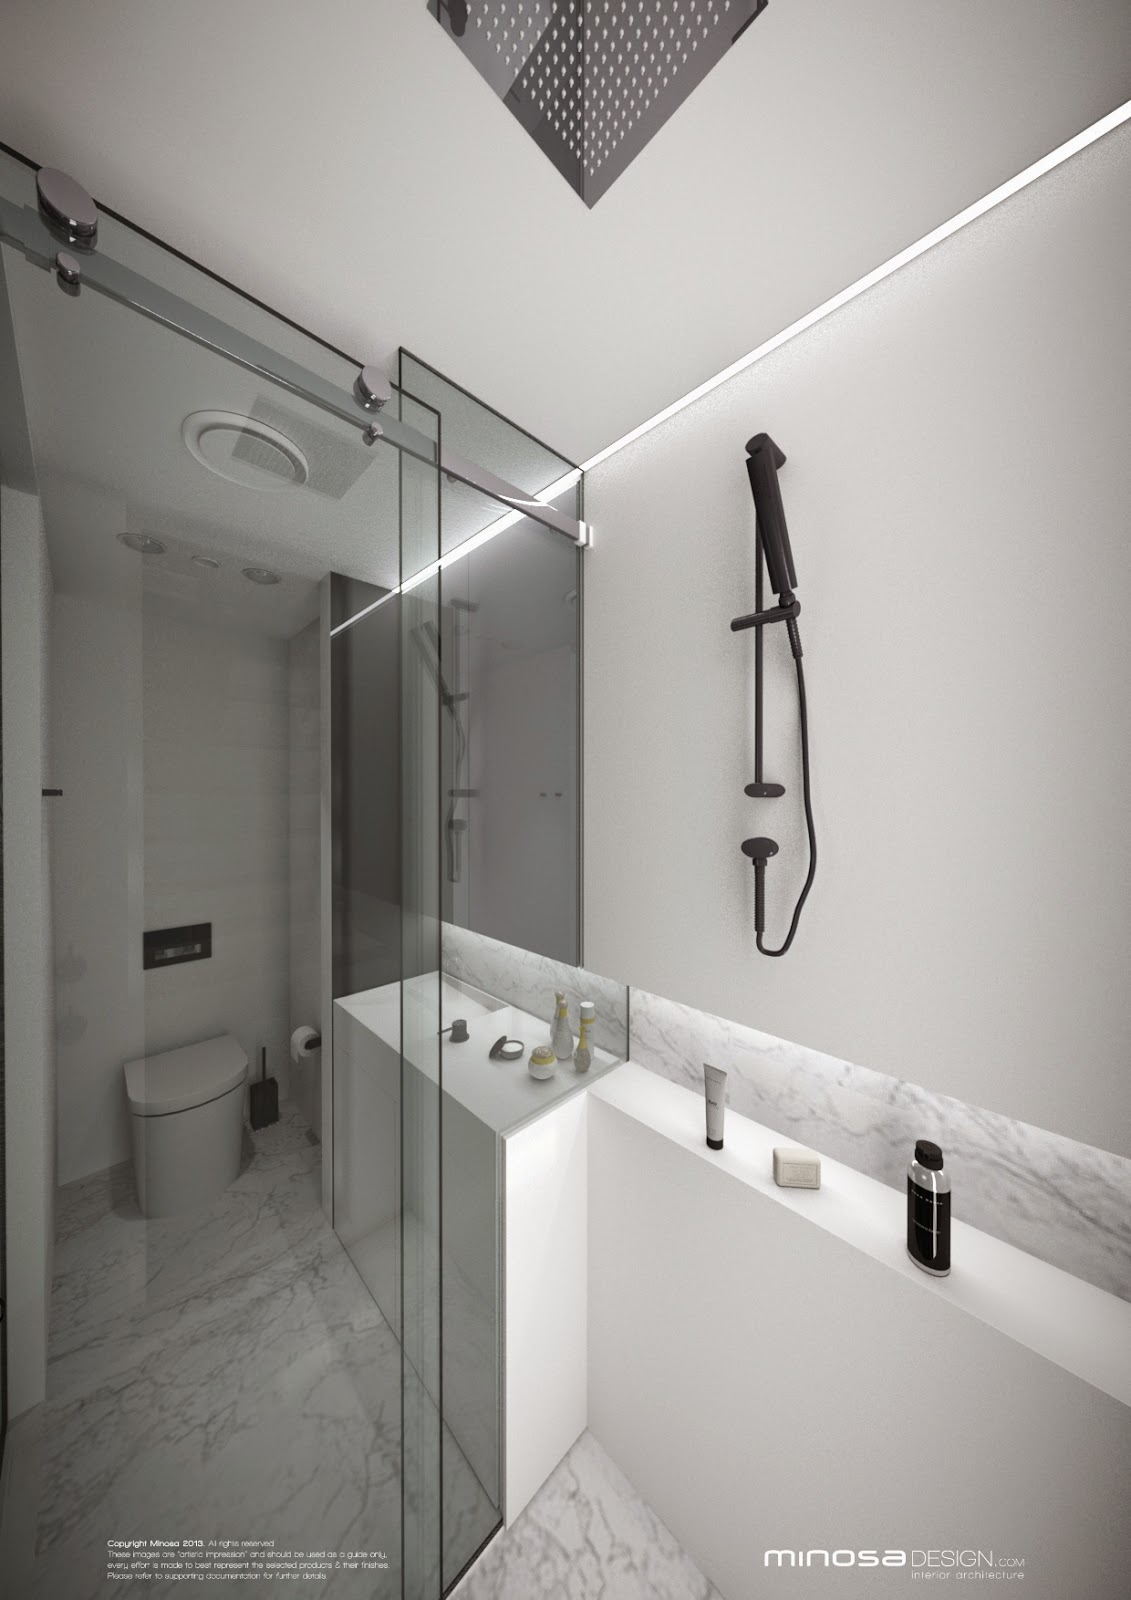 Why Bathroom Remodeling How To Set Bathroom Remodeling: Minosa: Small Bathroom & Glass Walls. Why Not?